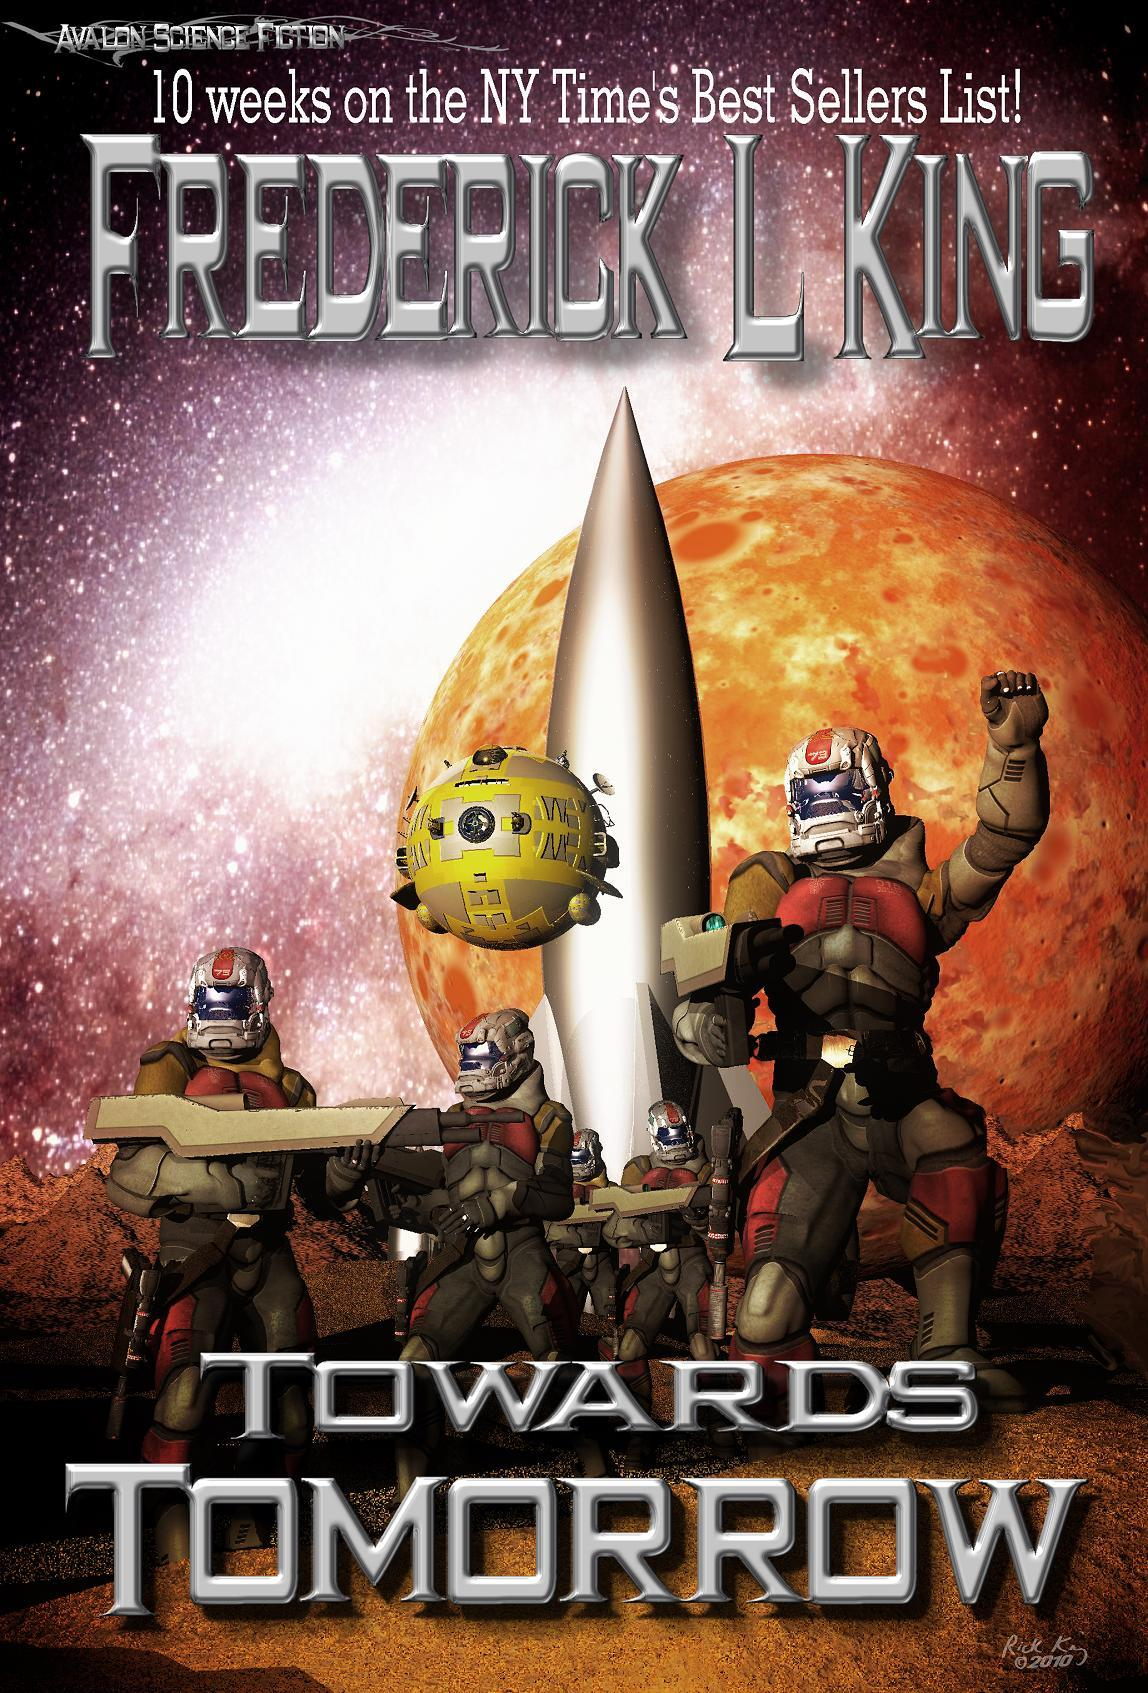 Towards Tomorrow (book cover)